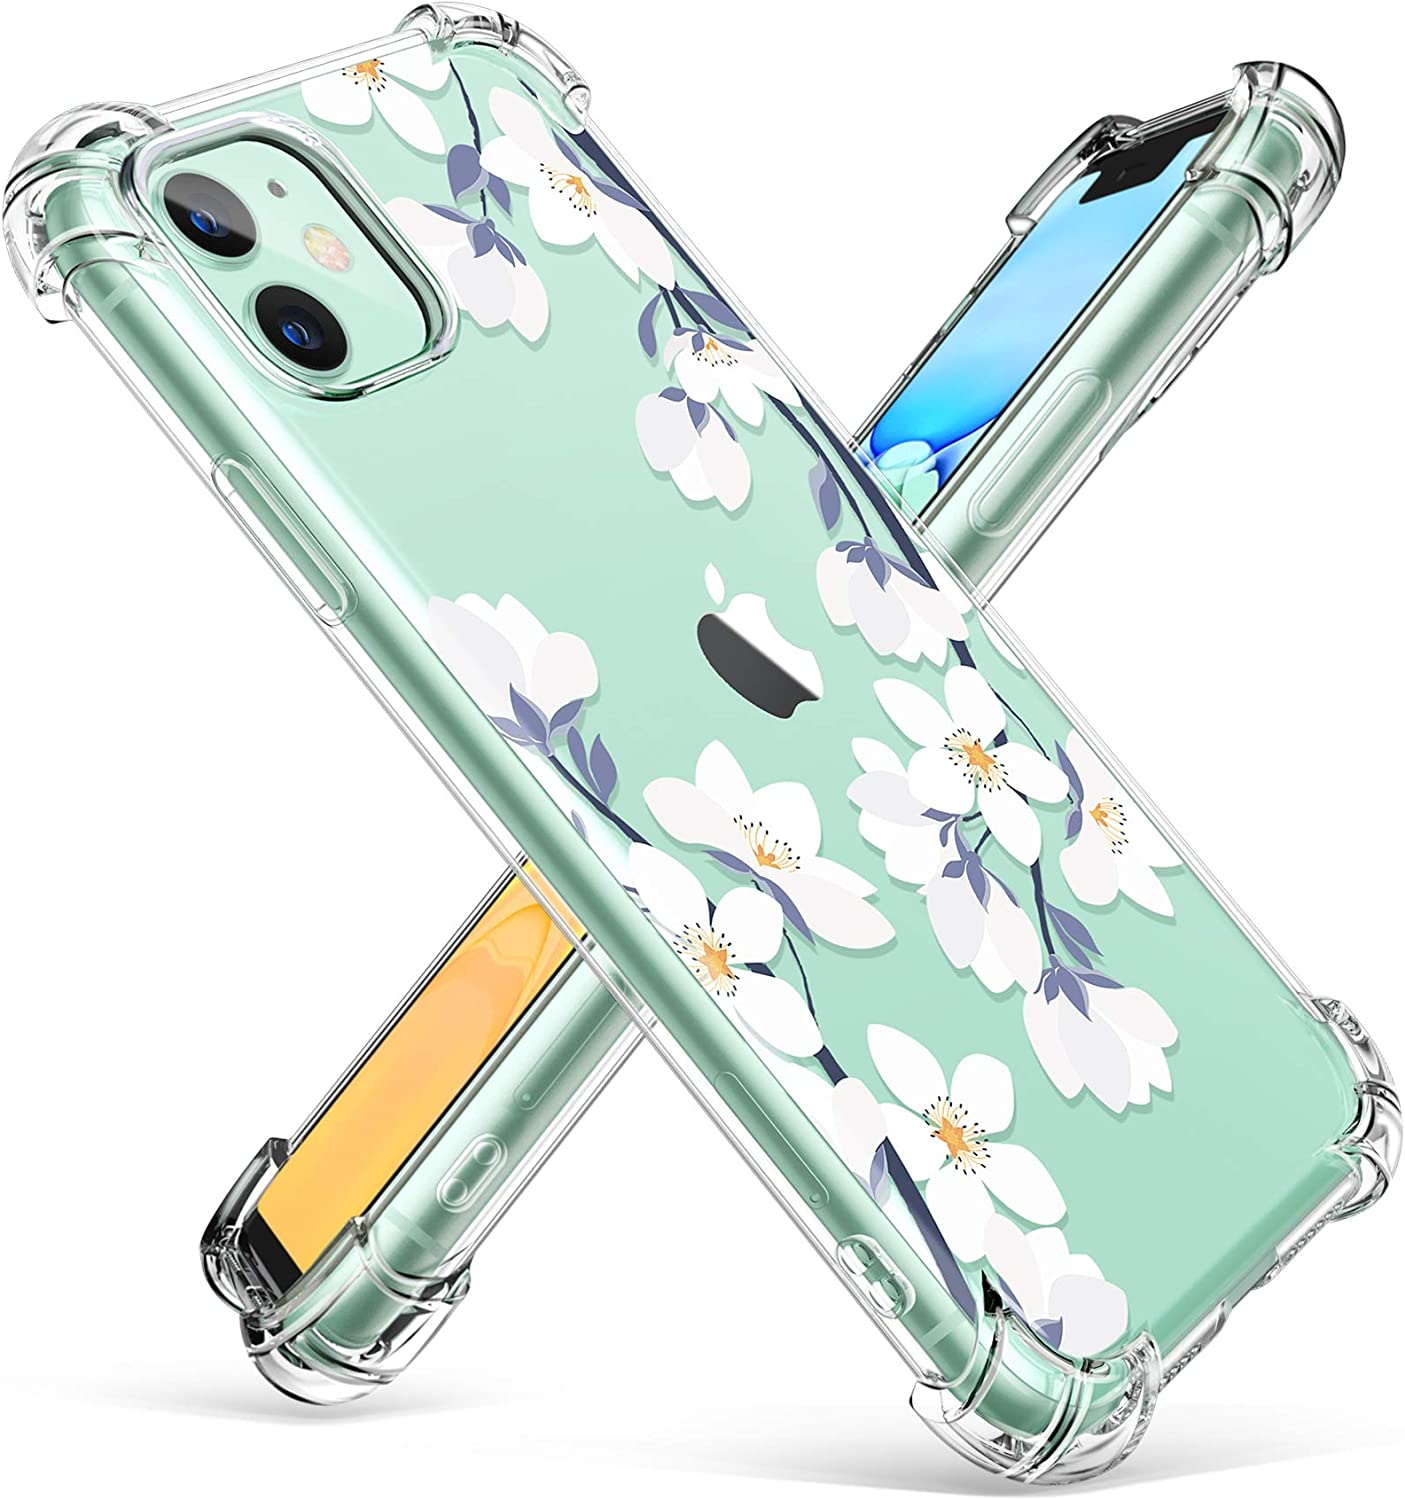 GVIEWIN iPhone 11 Case,Clear Flower Design Soft&Flexible TPU Thin Shockproof Transparent Bumper Protective Floral Cover Case for iPhone 11 6.1 inch 2019 (Windflower/White)